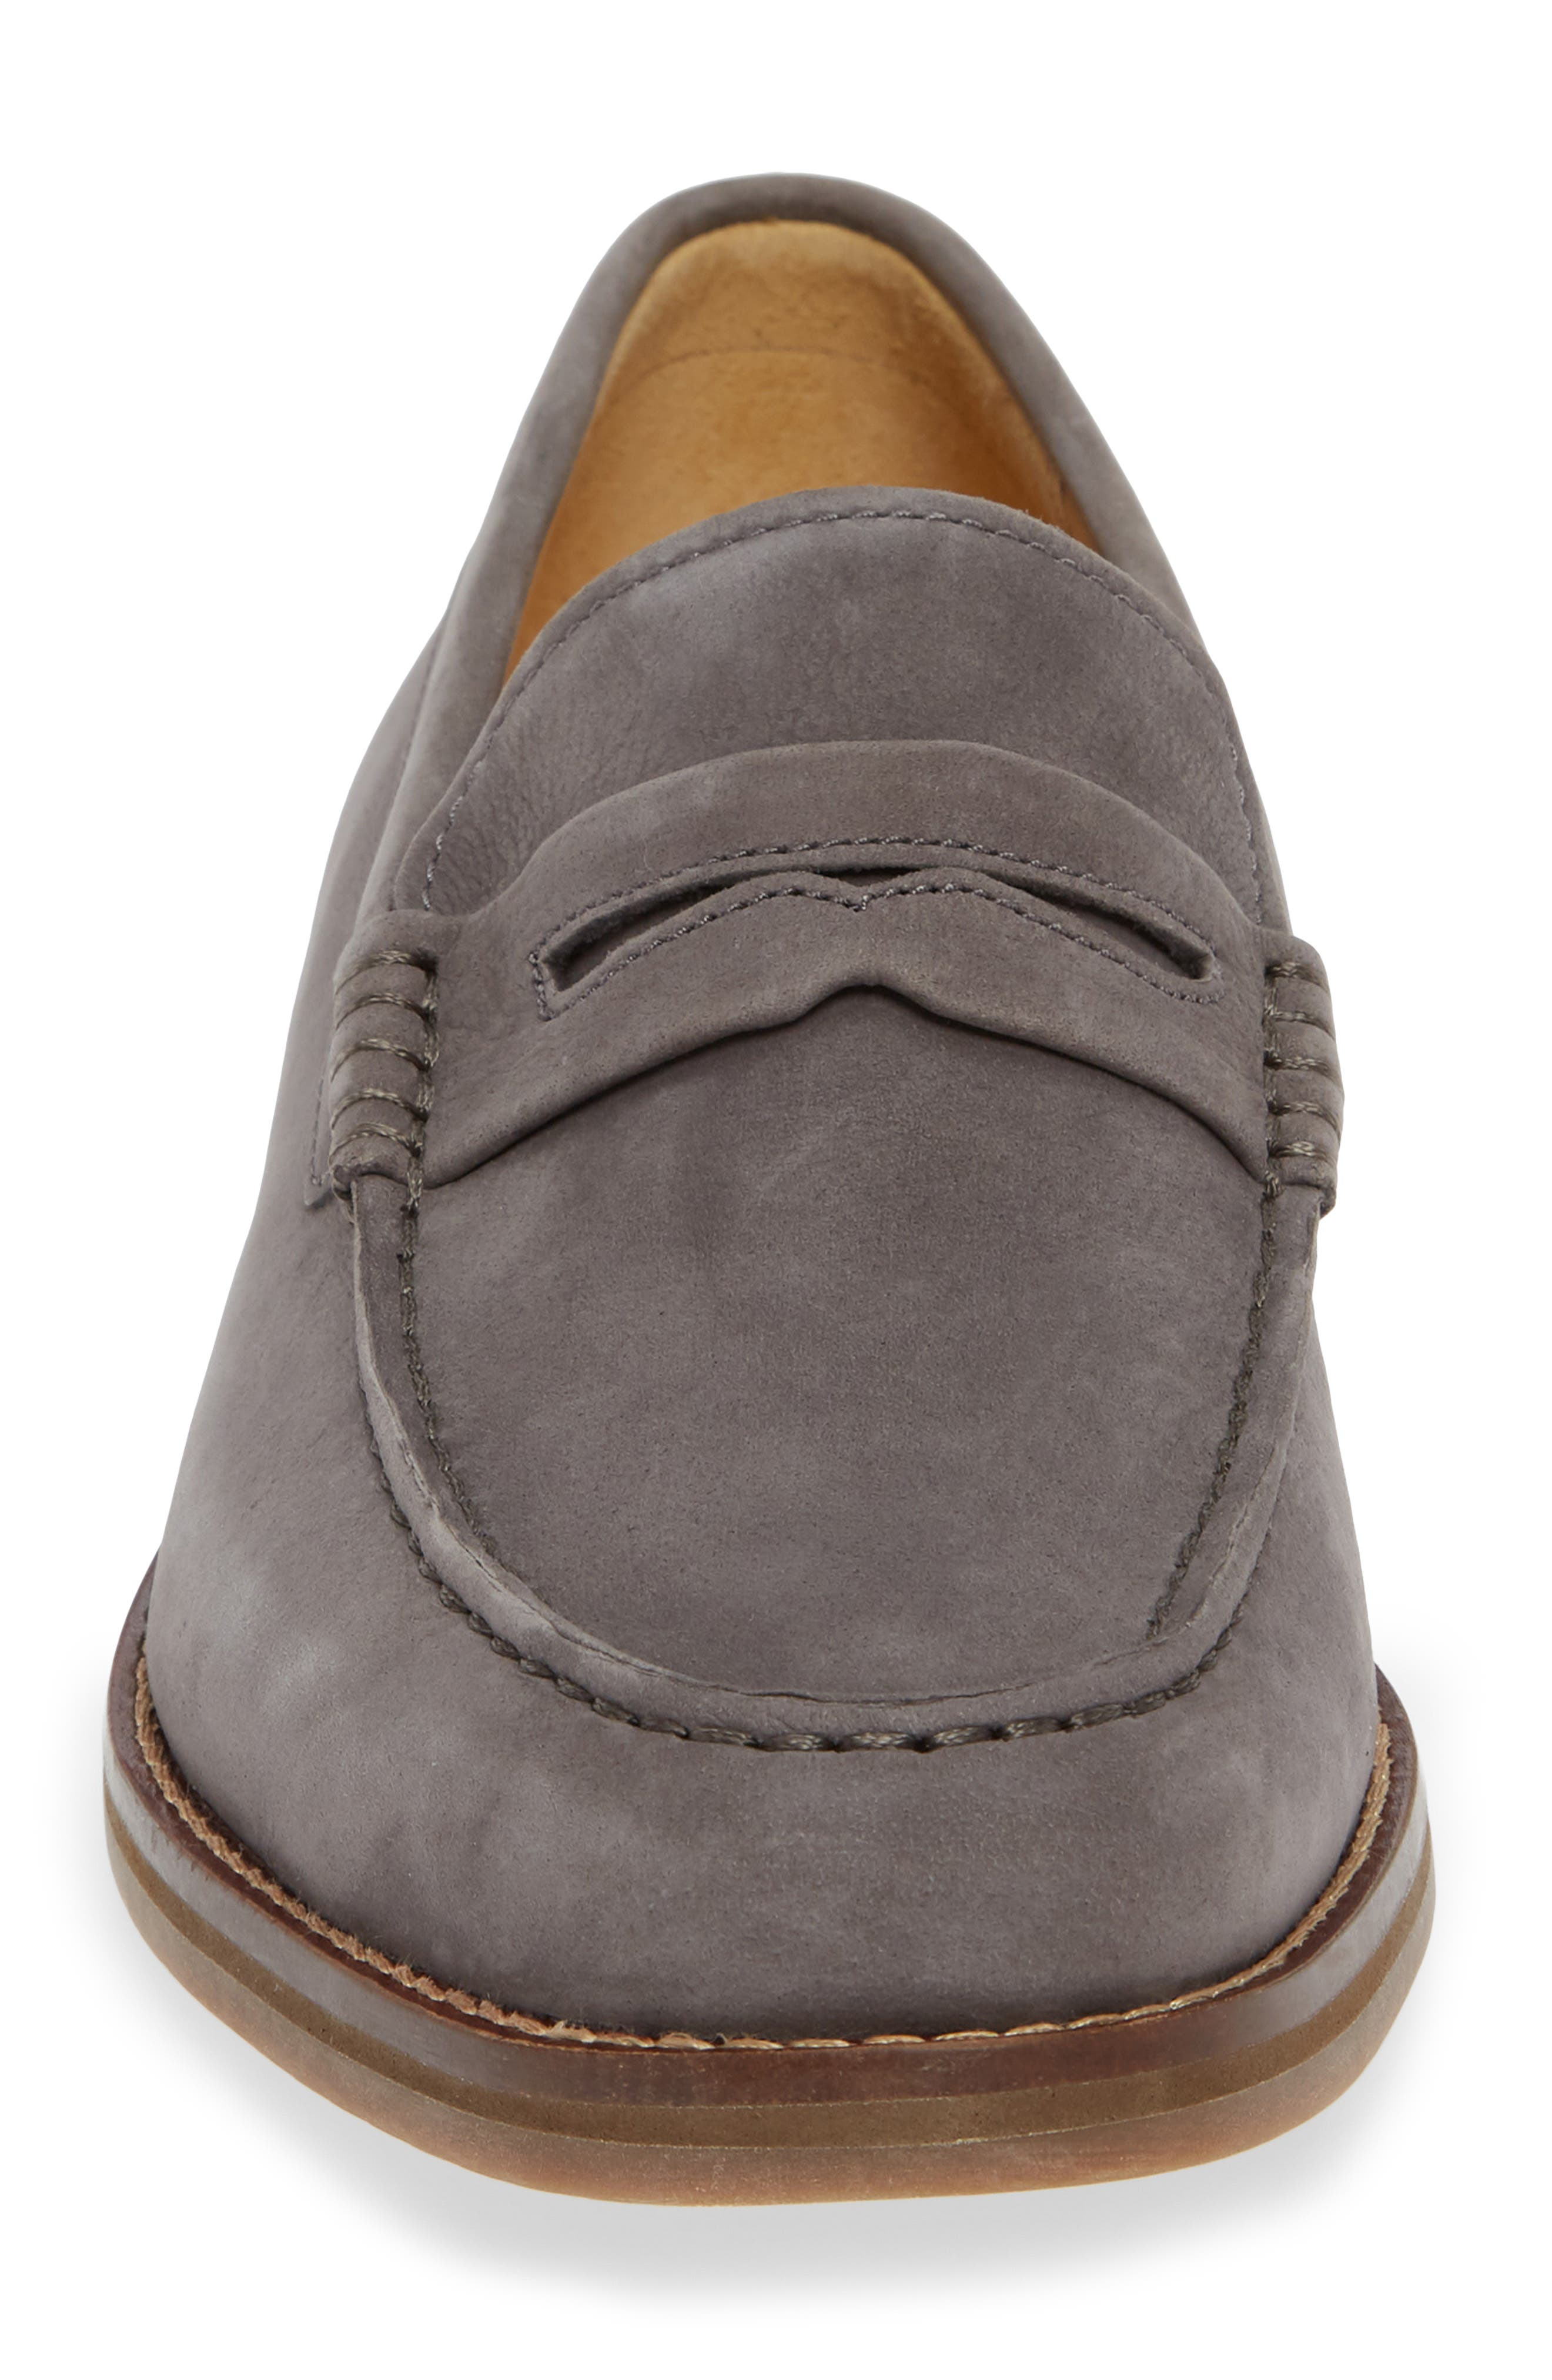 Gold Cup Exeter Penny Loafer,                             Alternate thumbnail 4, color,                             GREY